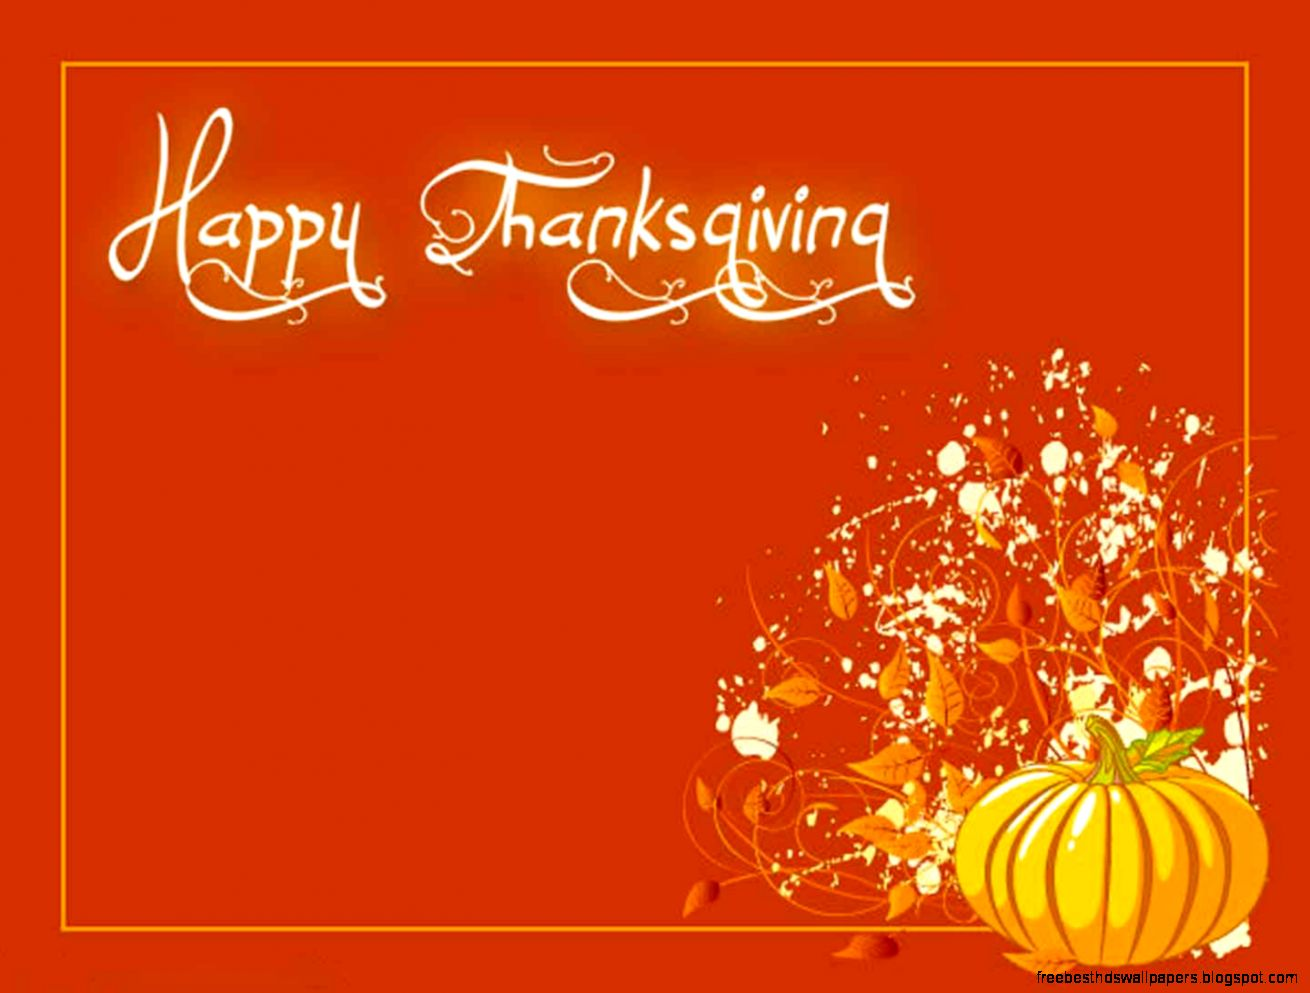 Happy Thanksgiving Desktop Backgrounds Free Best Hd Wallpapers